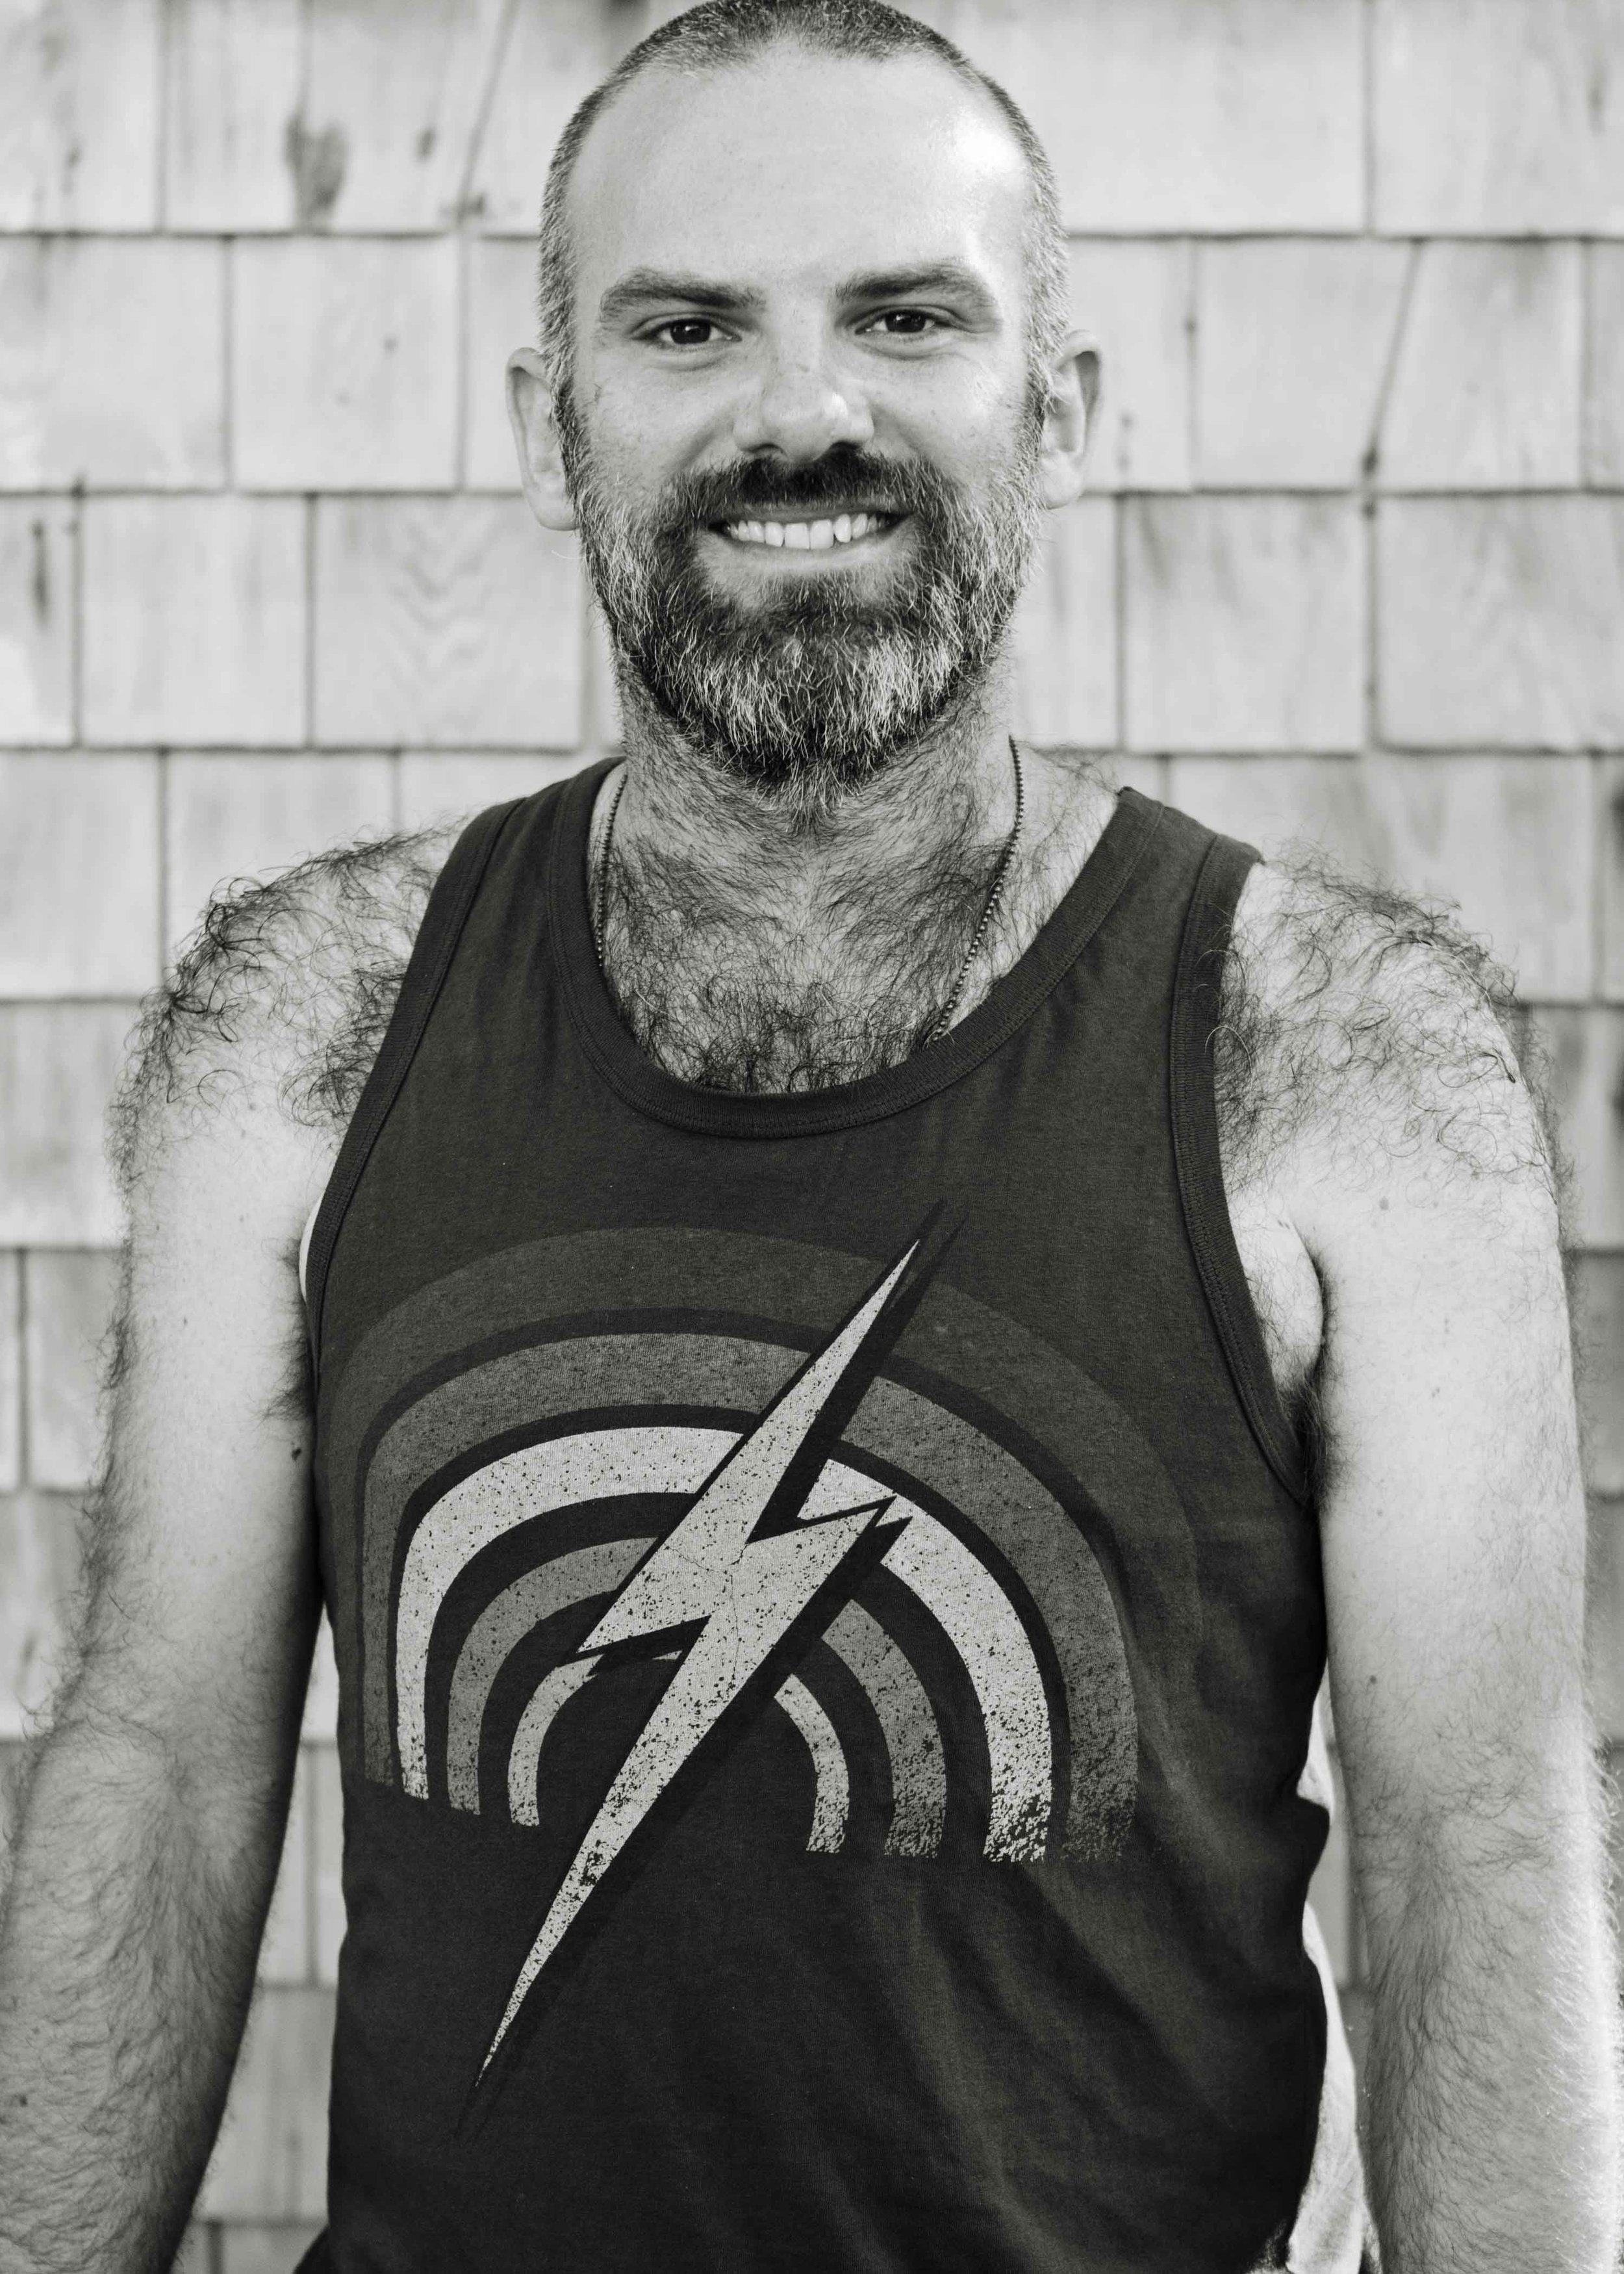 EDC_Portraits_In_Provincetown_2016_07_307 copy.jpg